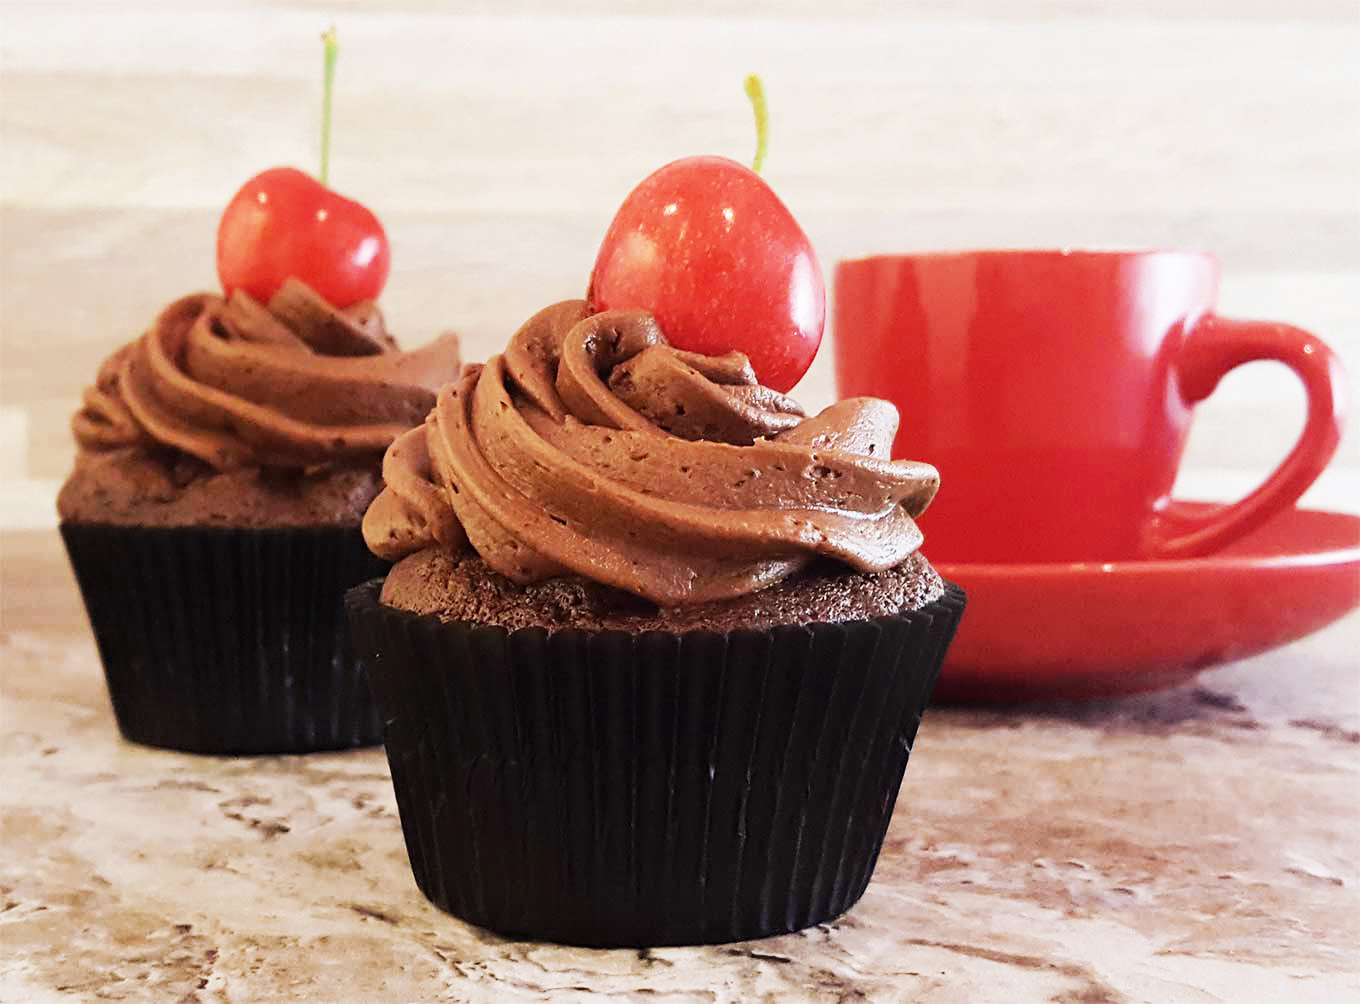 Cupcake Recipes | Extra, extra chocolaty. Cupcake with chocolate buttercream frosting. Perfect for birthdays, or any day, really.